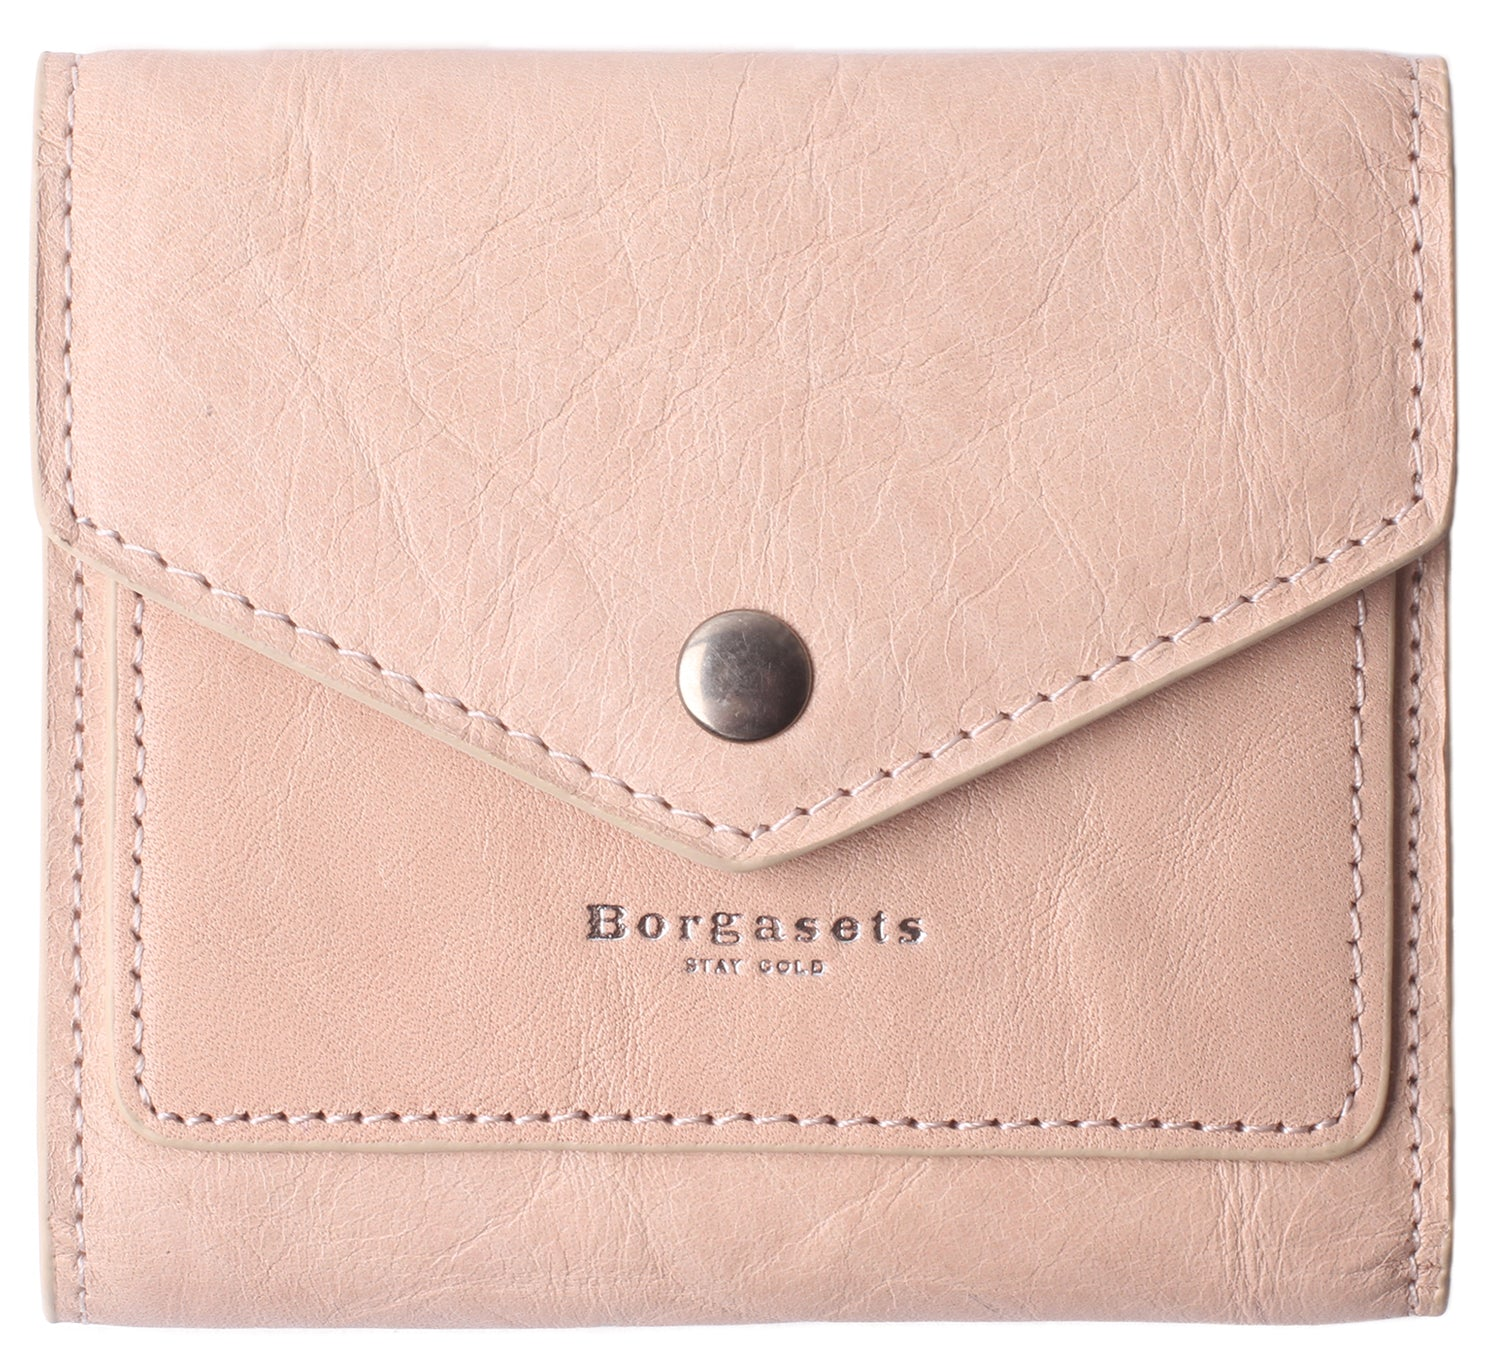 Small Leather Wallet for Women, RFID Blocking Women's Credit Card Holder Mini Bifold Pocket Purse BG1023 Ice Pink - Borgasets